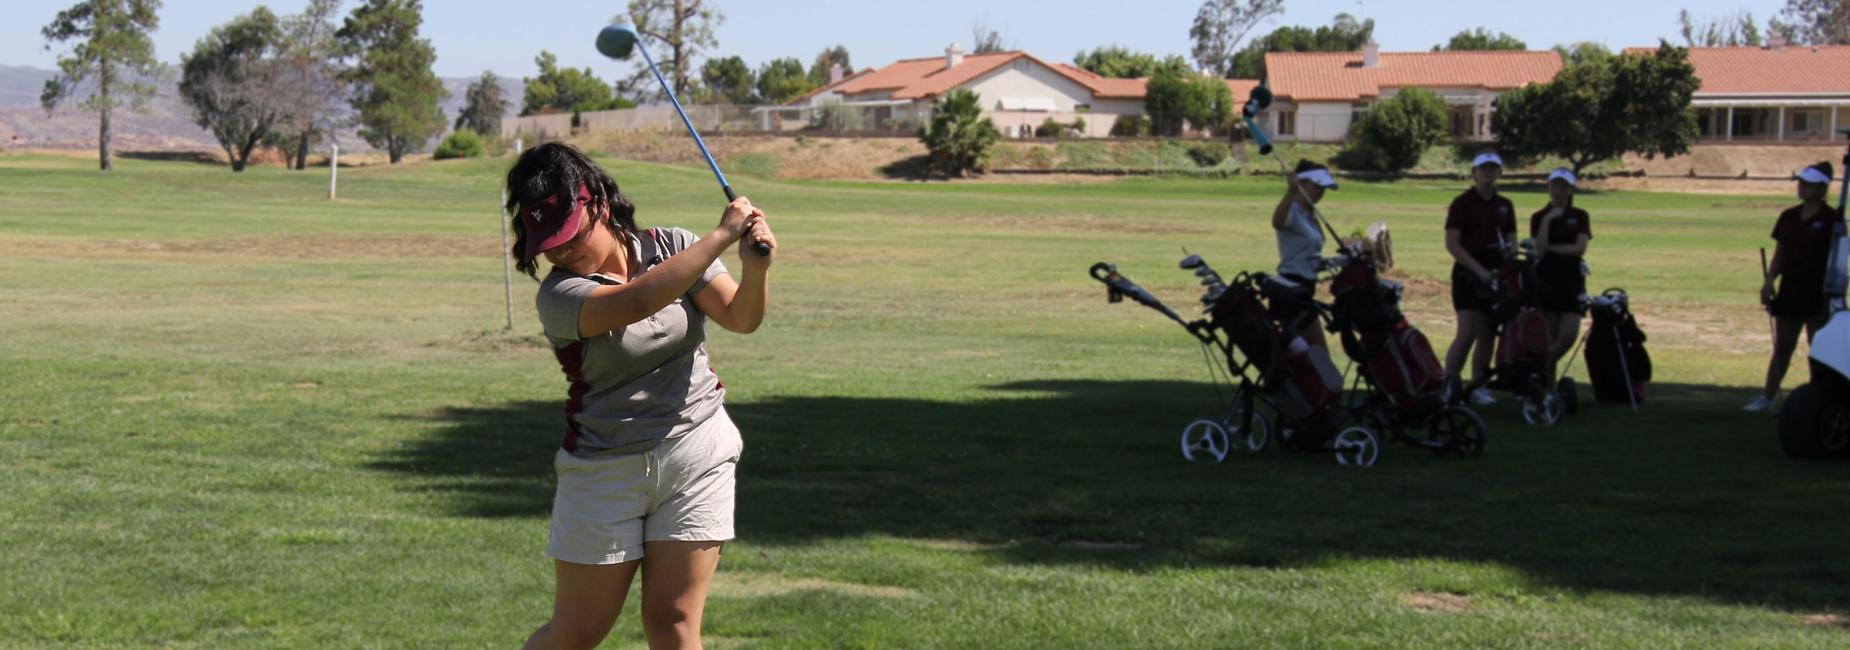 Girls golf team player hitting the ball